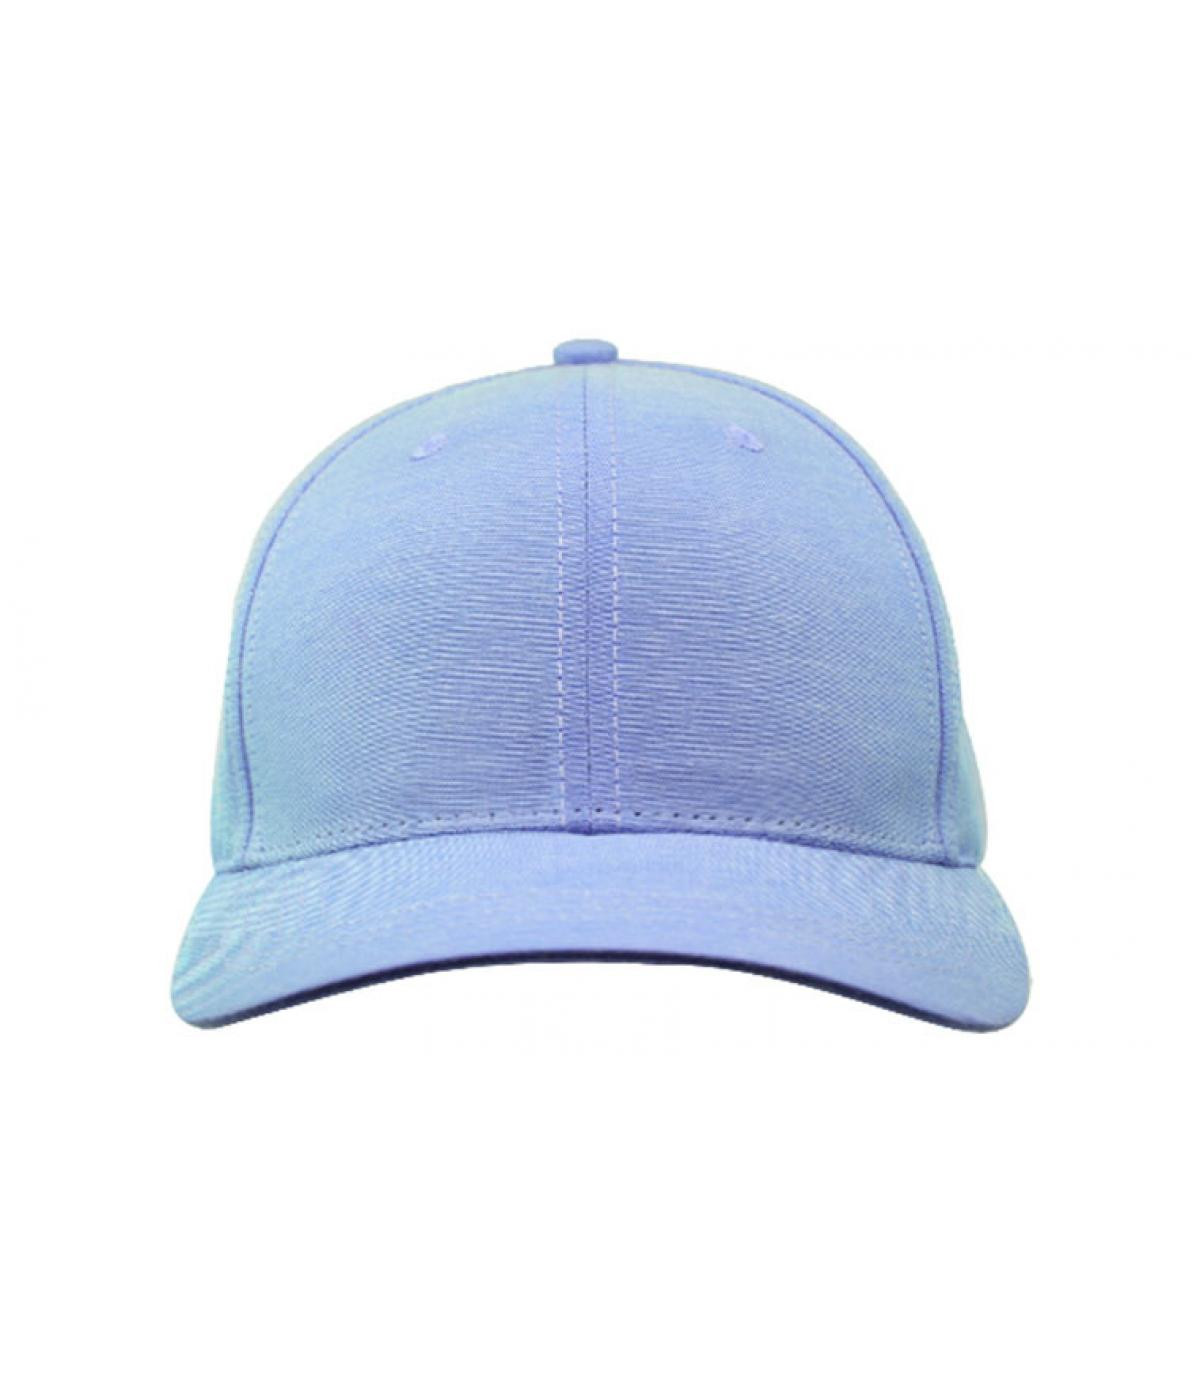 Curve Blank chambray blue